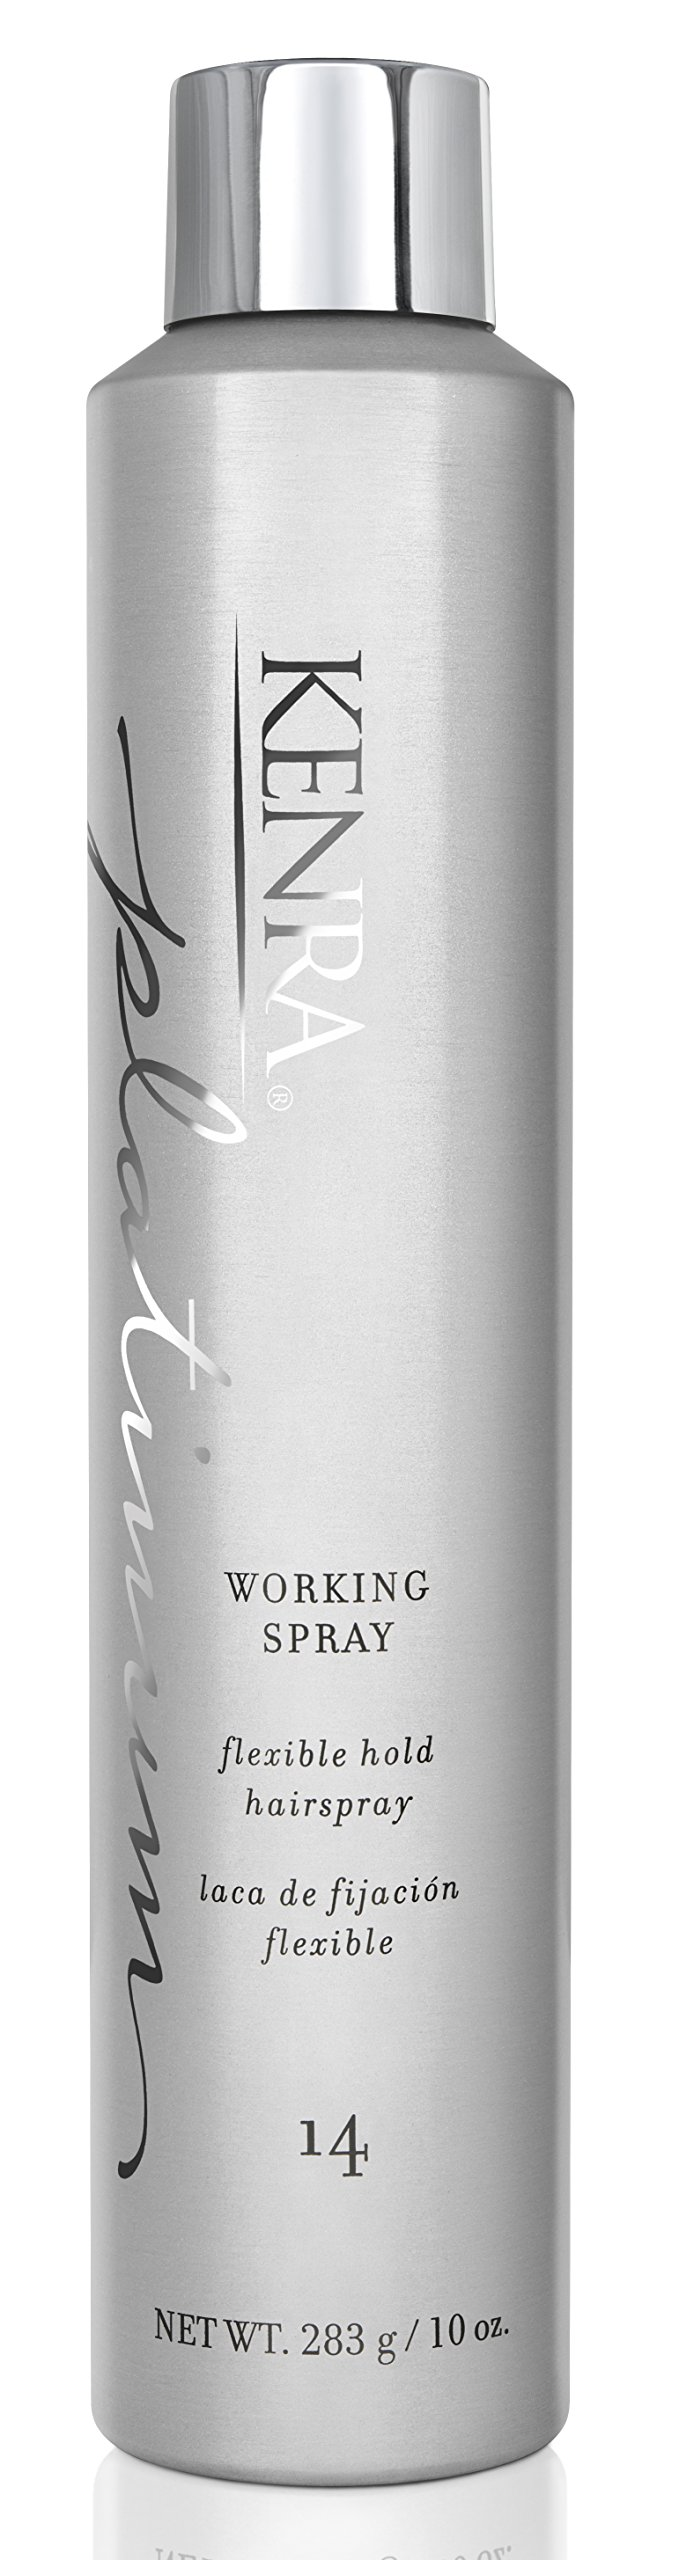 Kenra Platinum Working Spray #14, 80% VOC, 10-Ounce